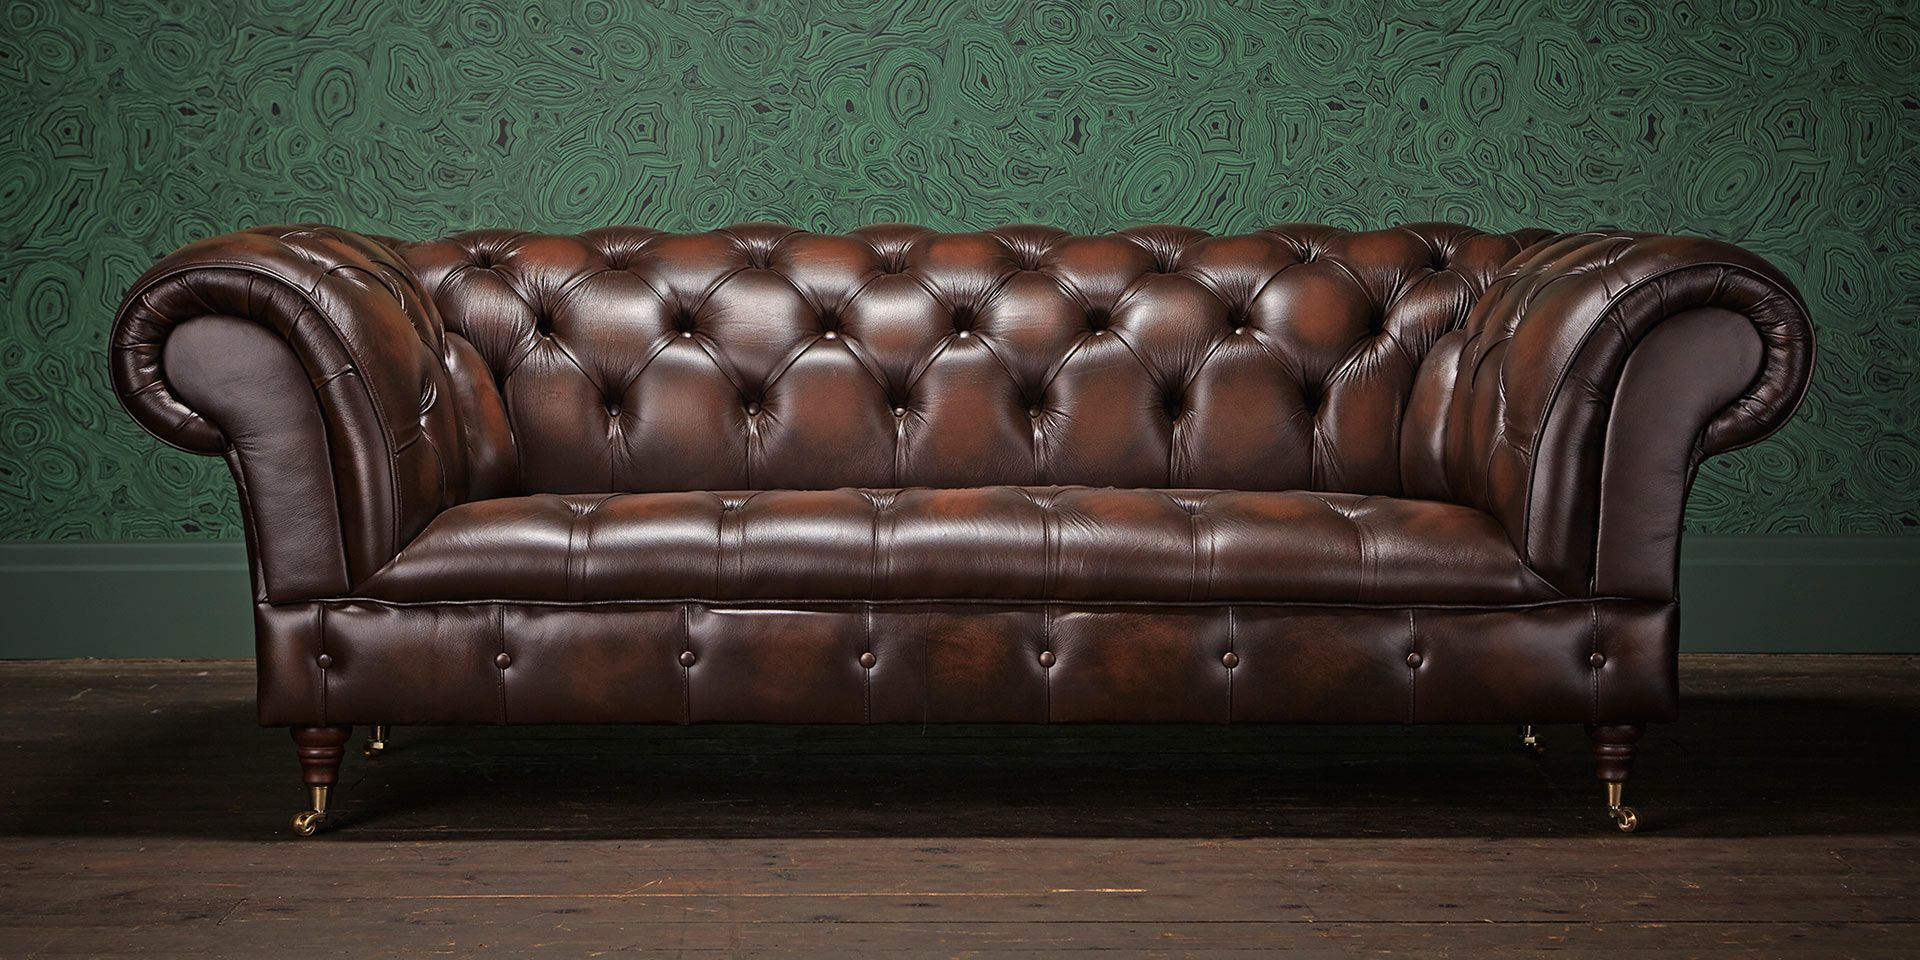 1931 Chesterfield Sofa | Chesterfields of England